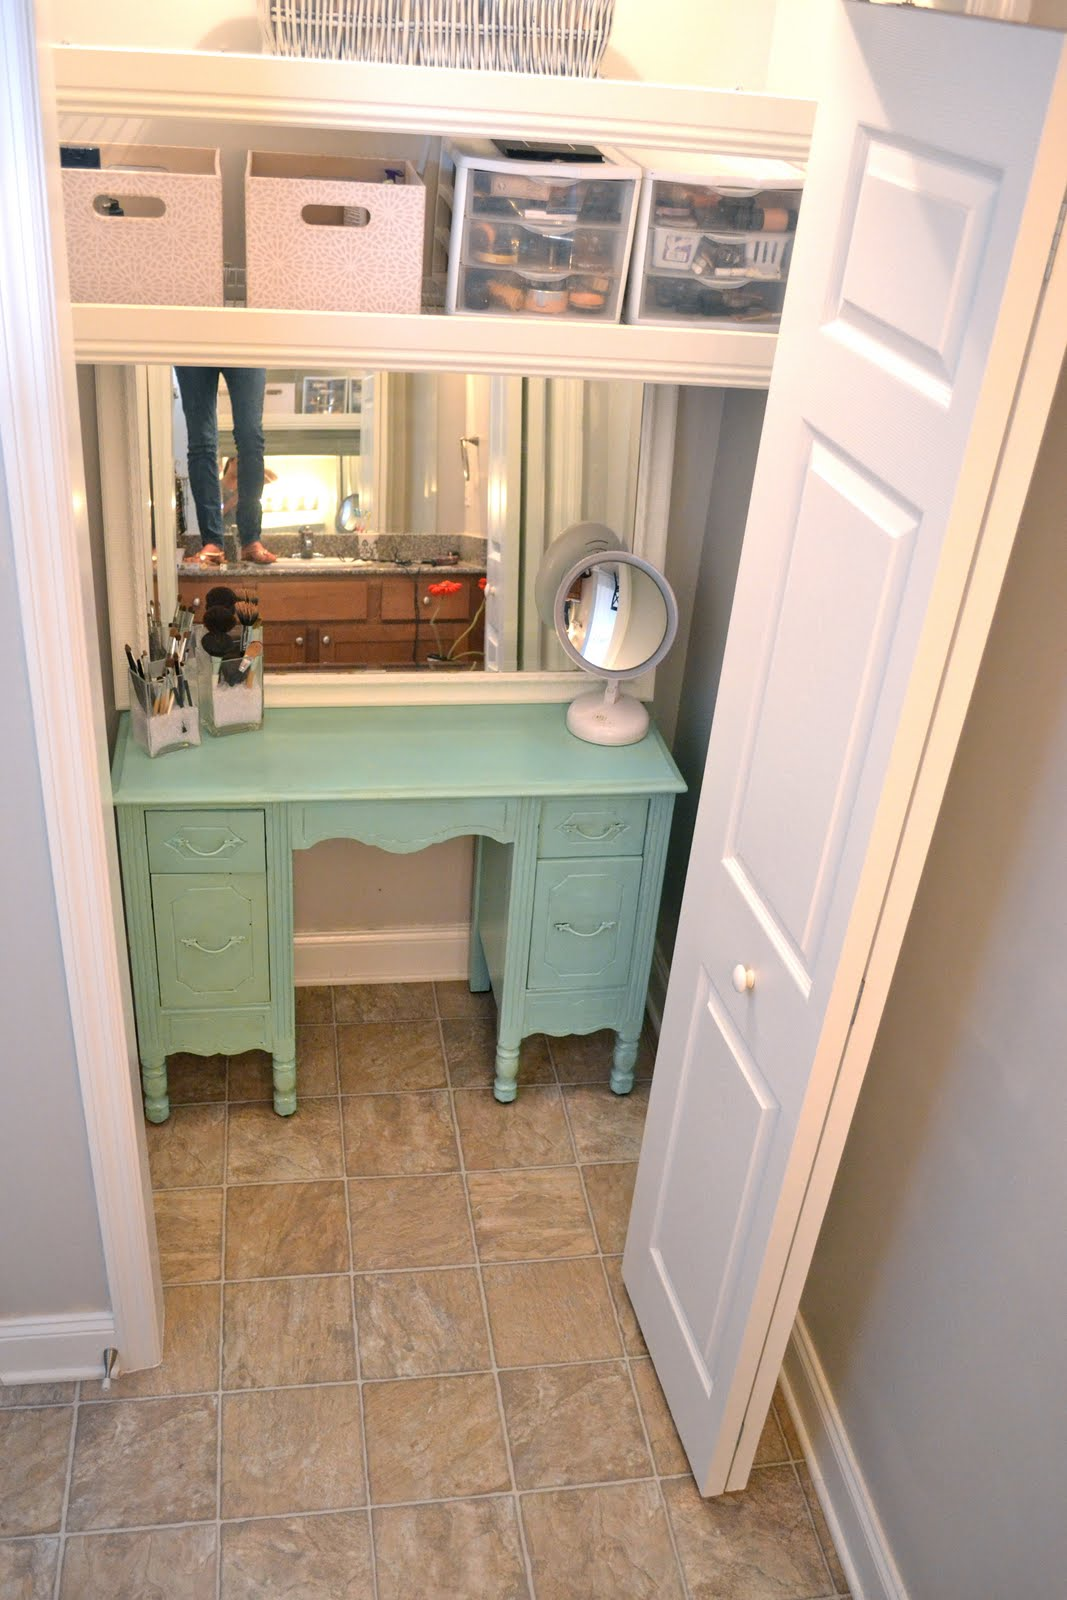 This Is The Vanity As You Have Seen In My Past Post HERE U0026 The Mirror That  I Re Did HERE. No All I Need Is To Find A Cute Vanity Chair For My Vanity  Closet.